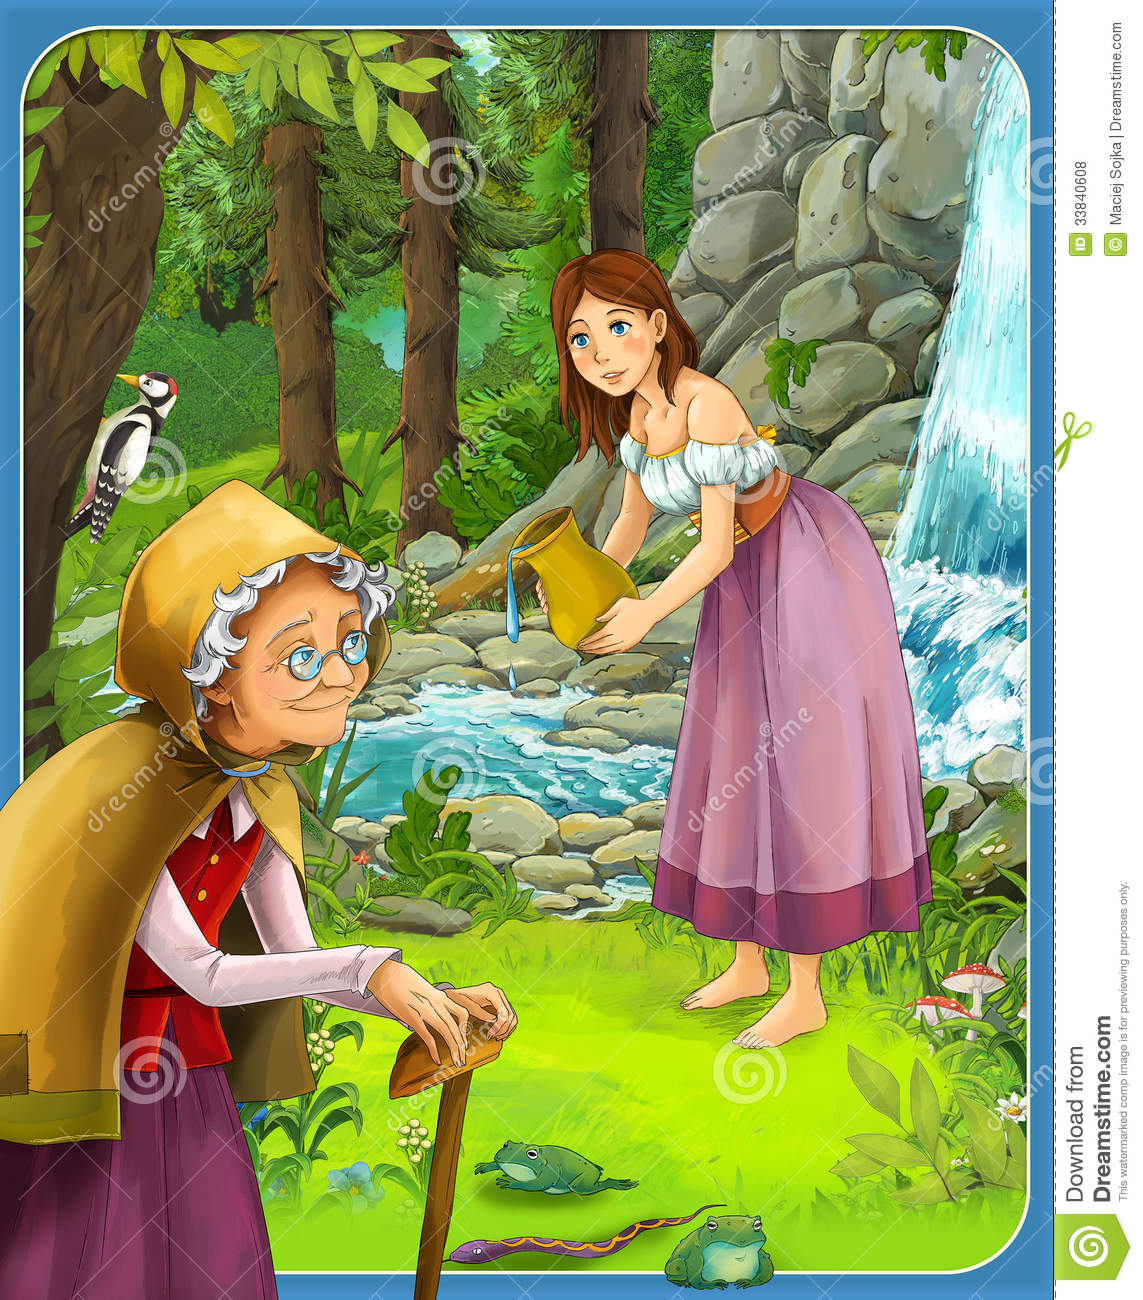 The fairy tale beautiful manga style illustration for - Fotos tale mporaines ...